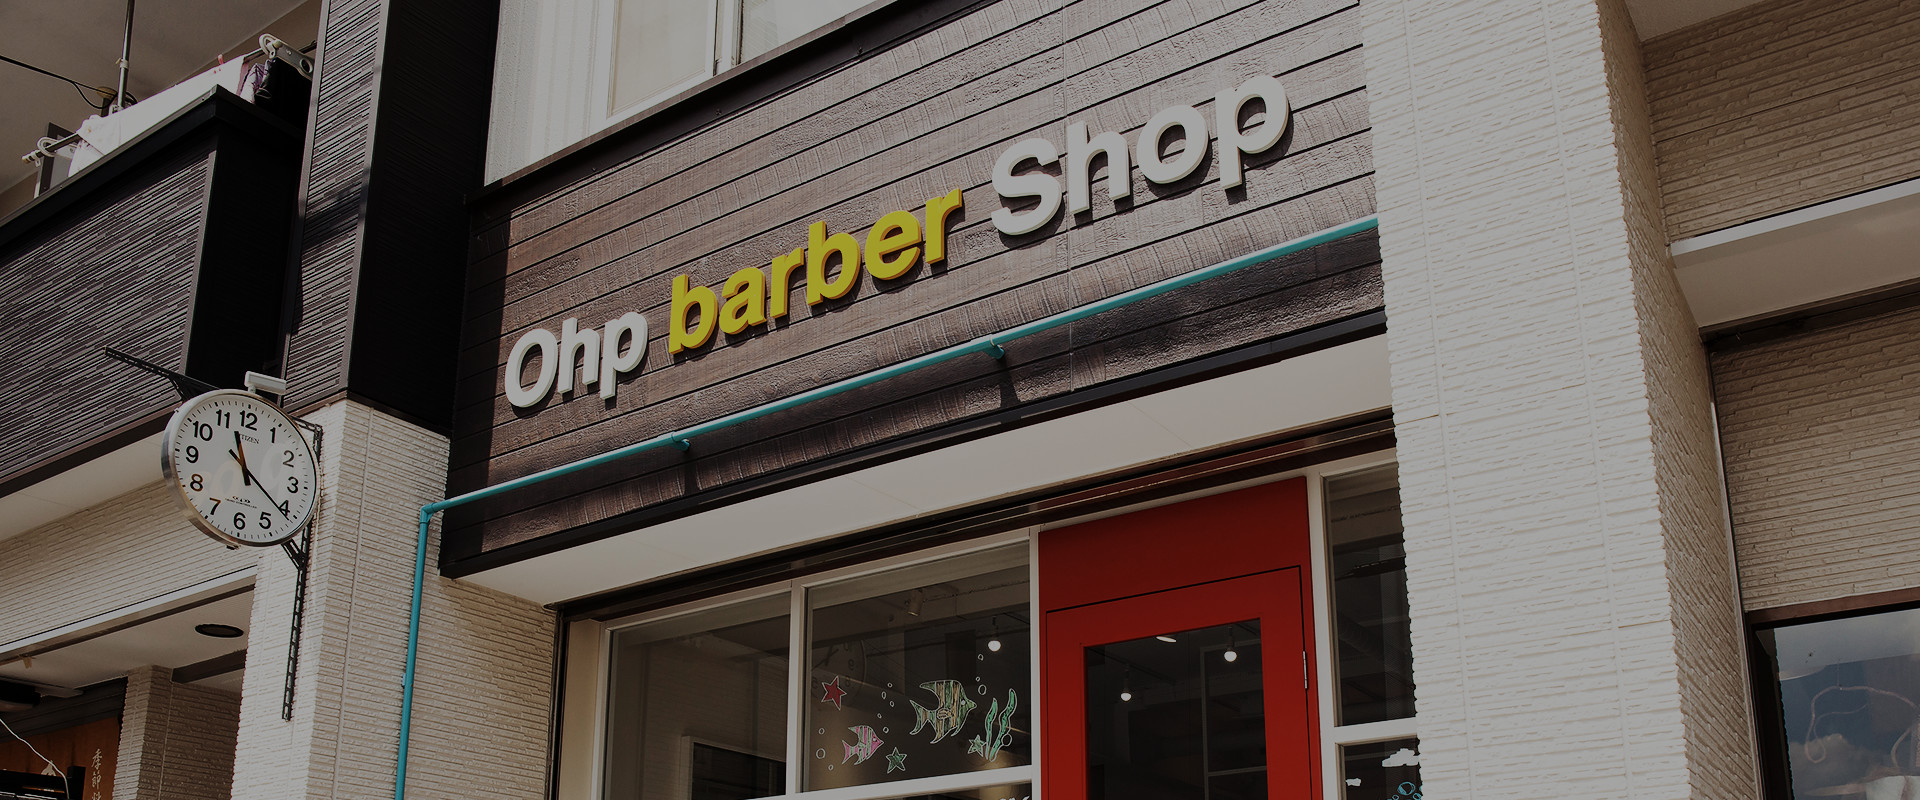 Ohp barber Shop